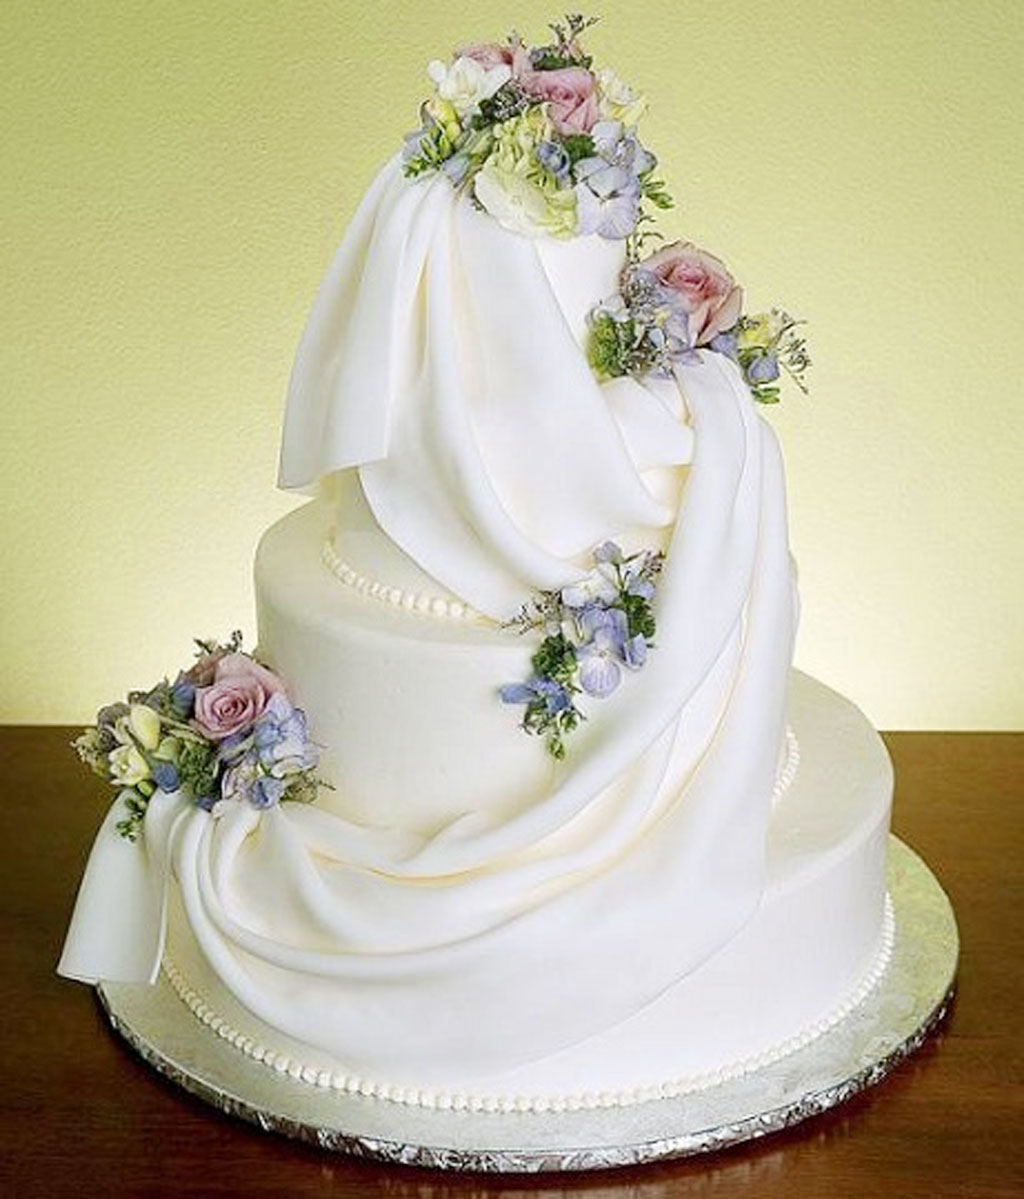 most beautiful wedding cake images most beautiful wedding cake decoration wedding cake cake 17547